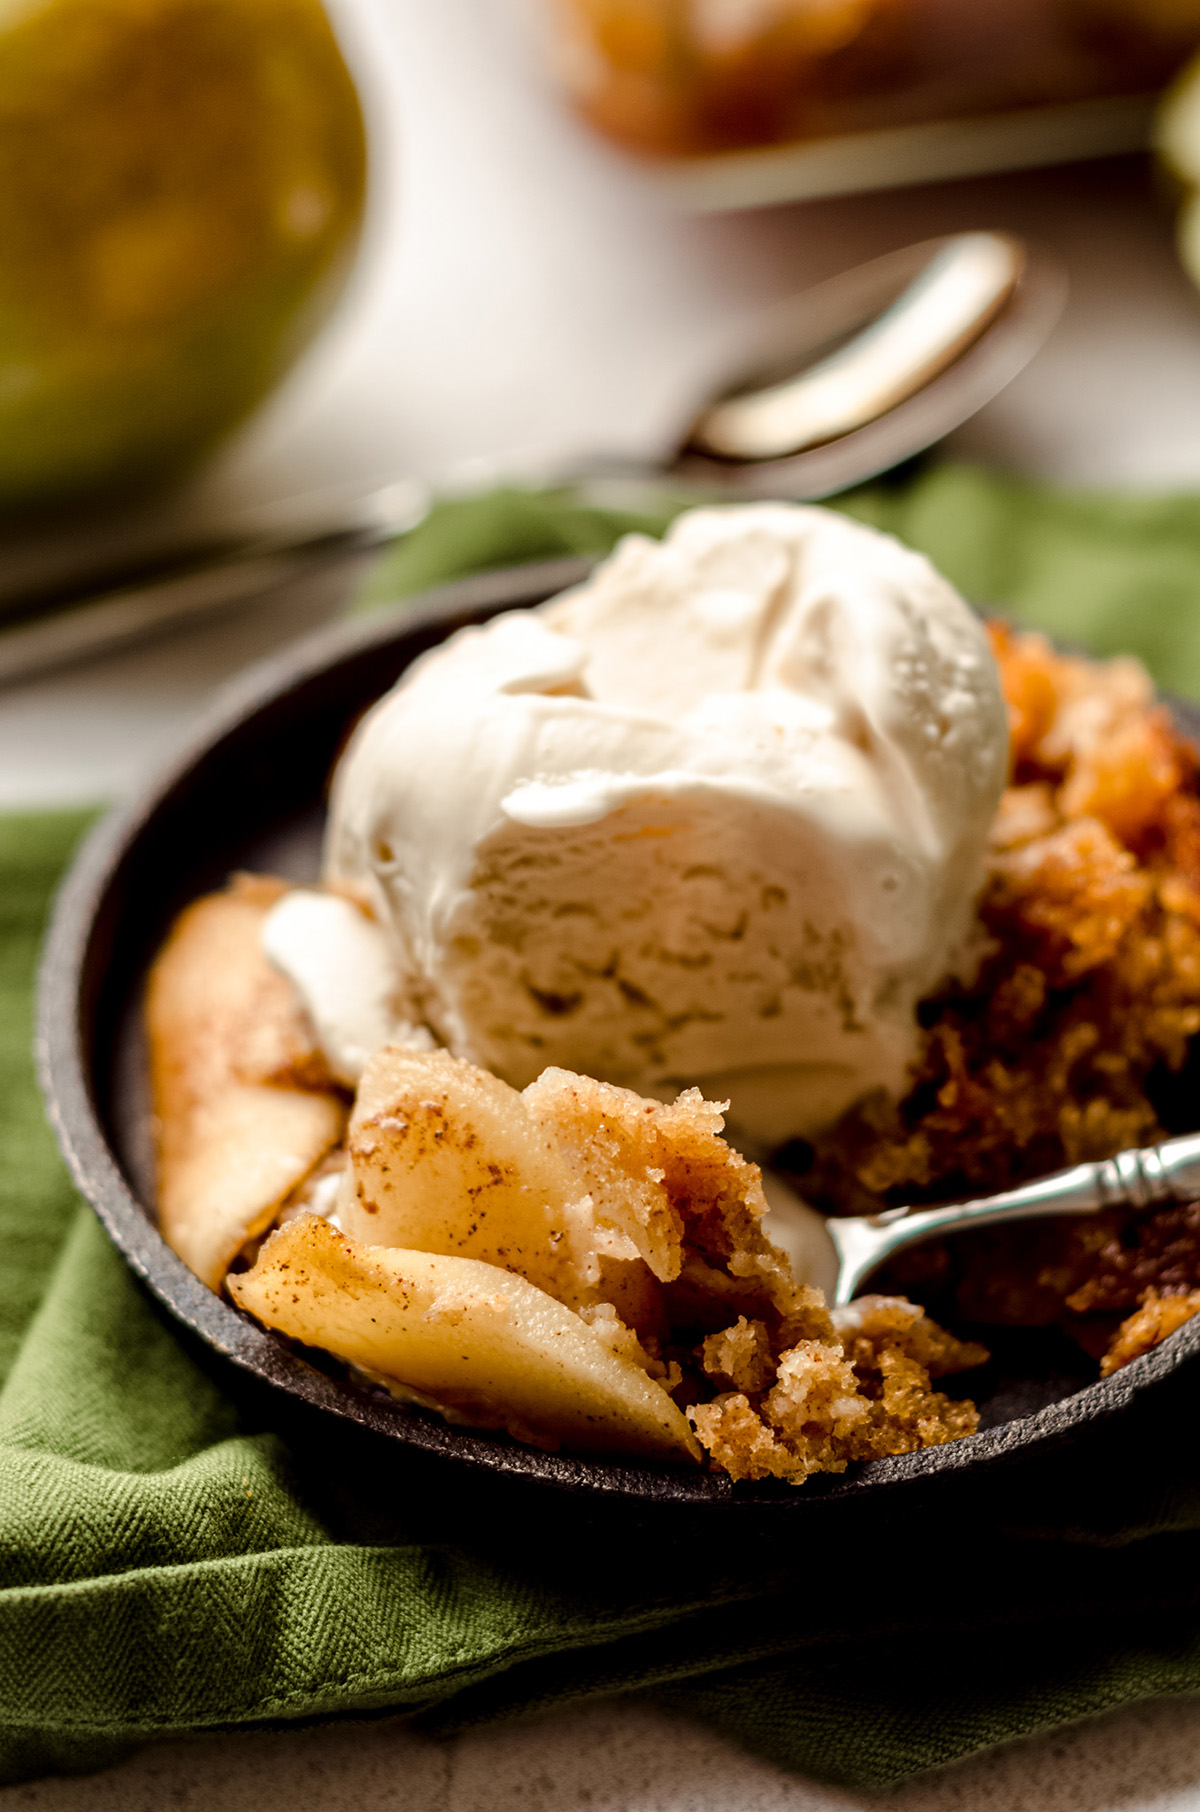 pear cobbler with a scoop of ice cream on top